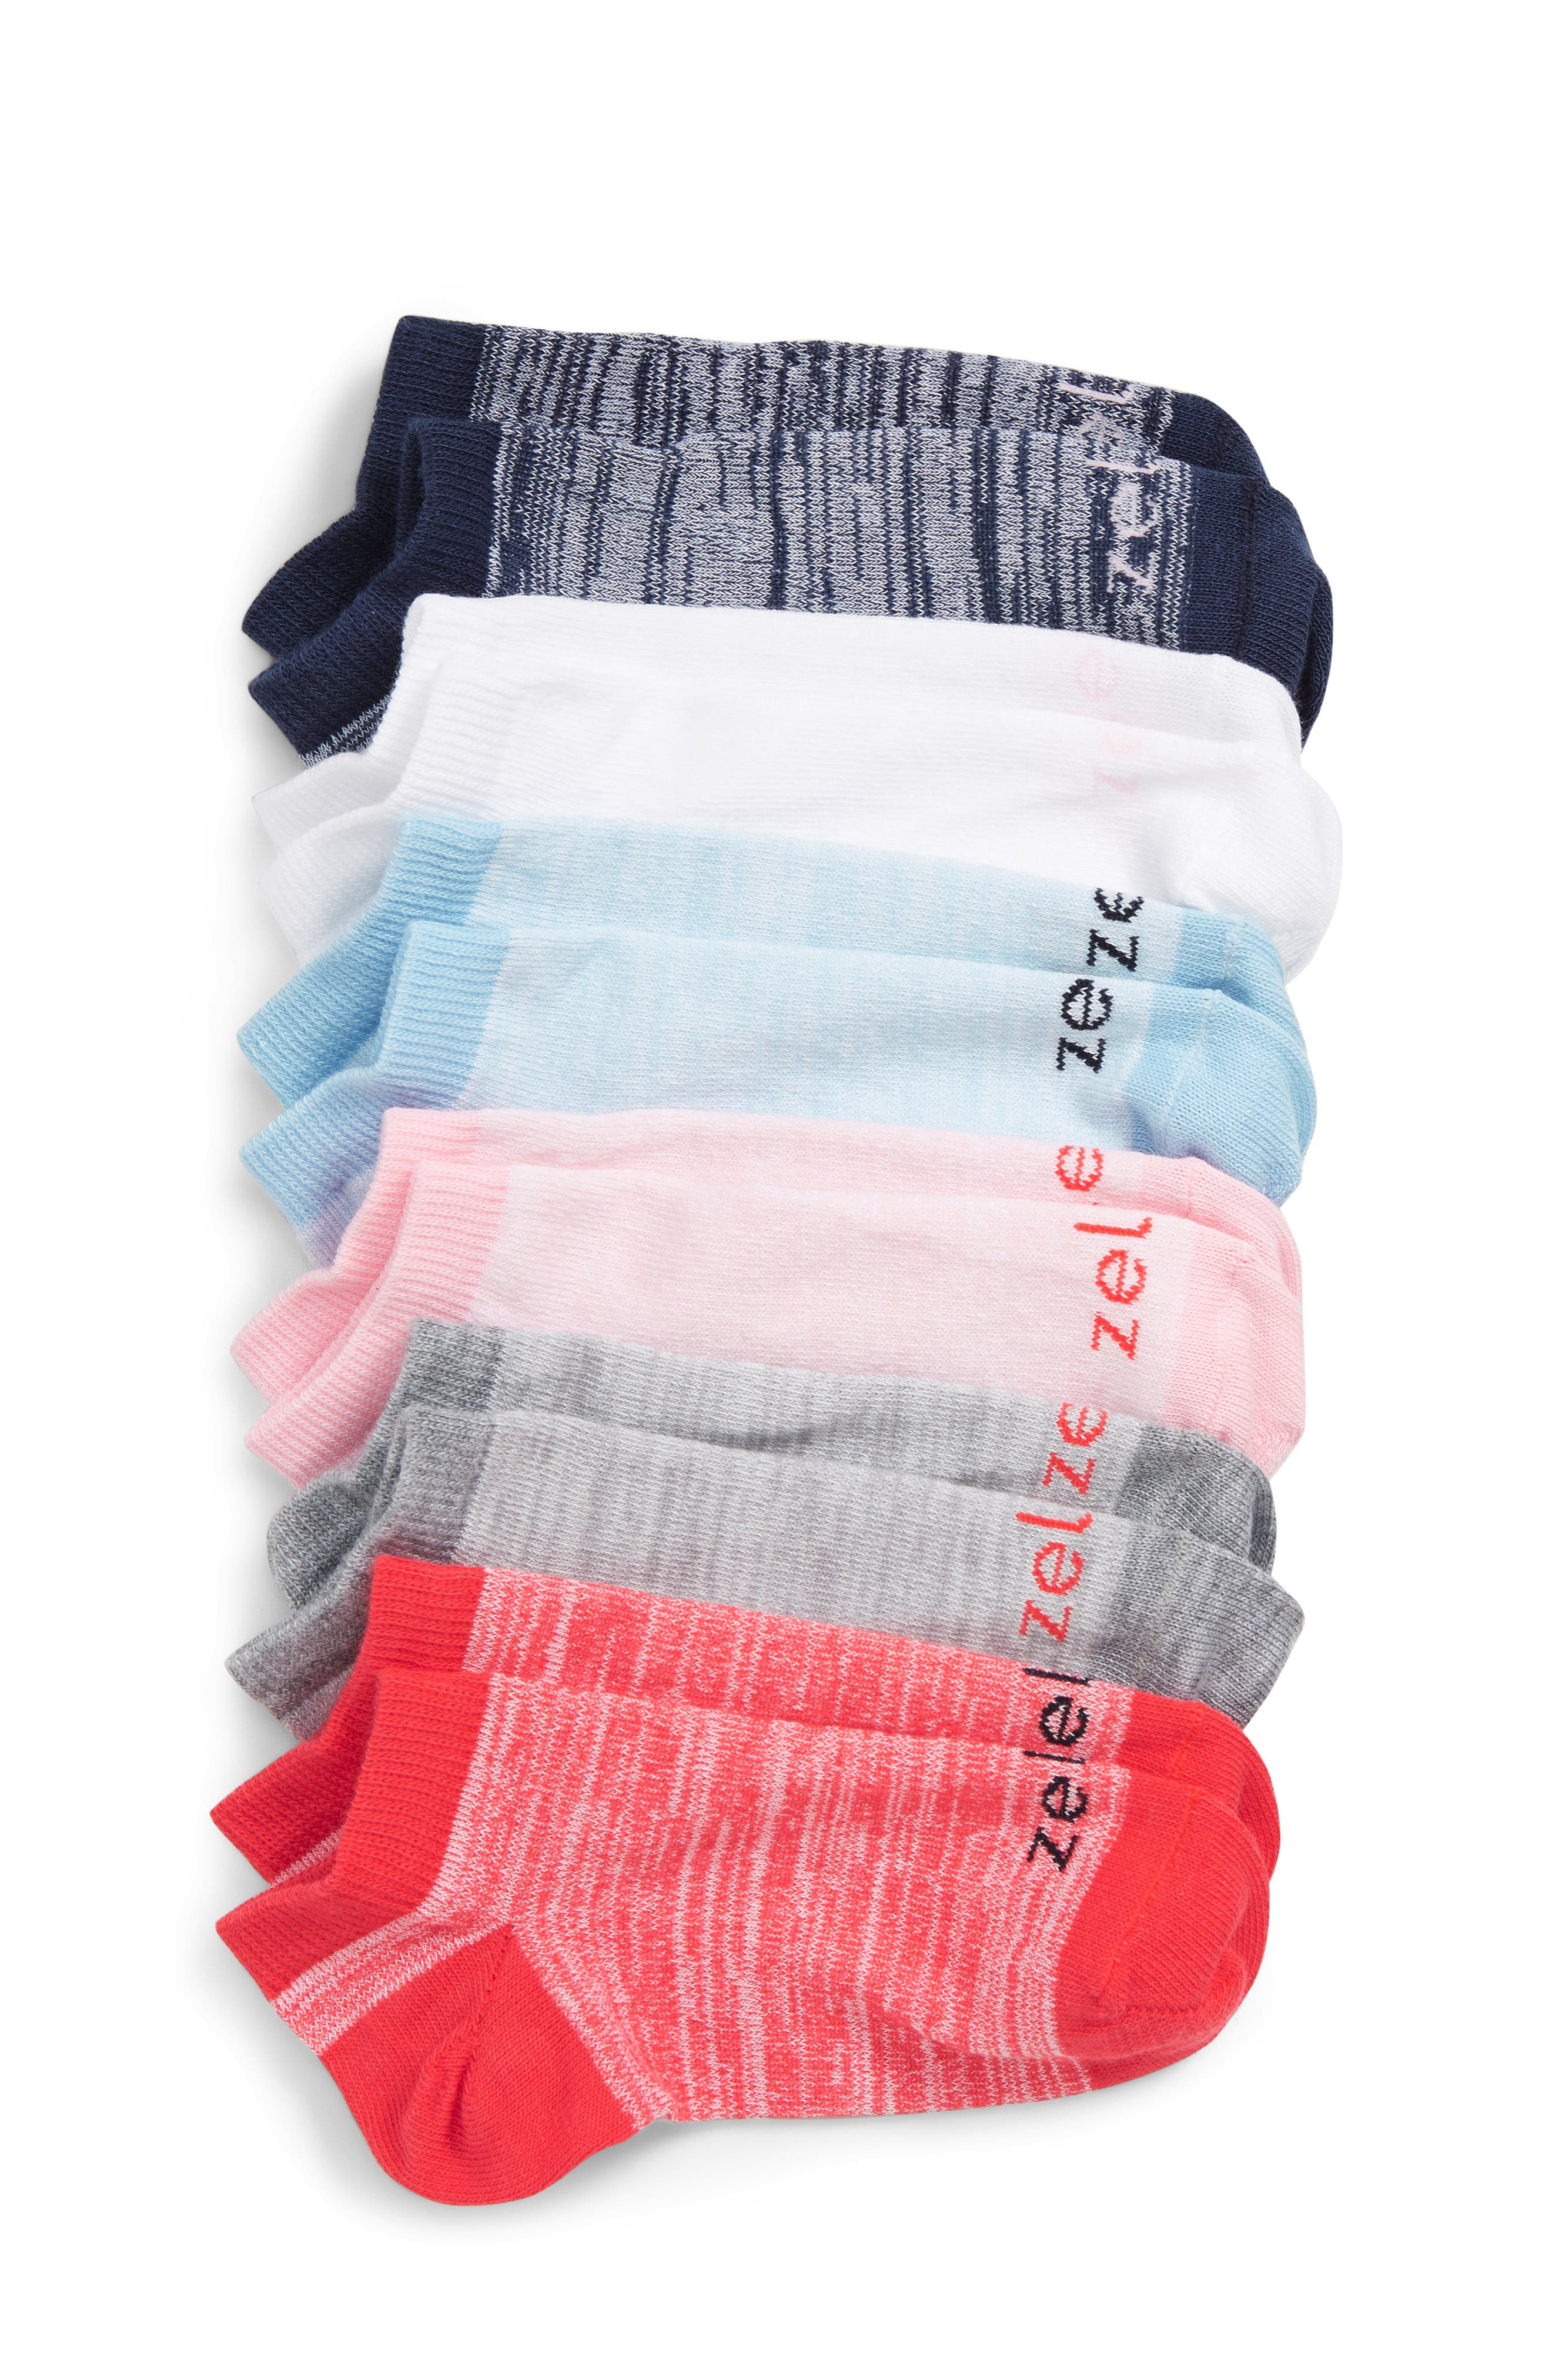 6-Pack Ankle Socks, Main, color, PINK TEABERRY MULTI